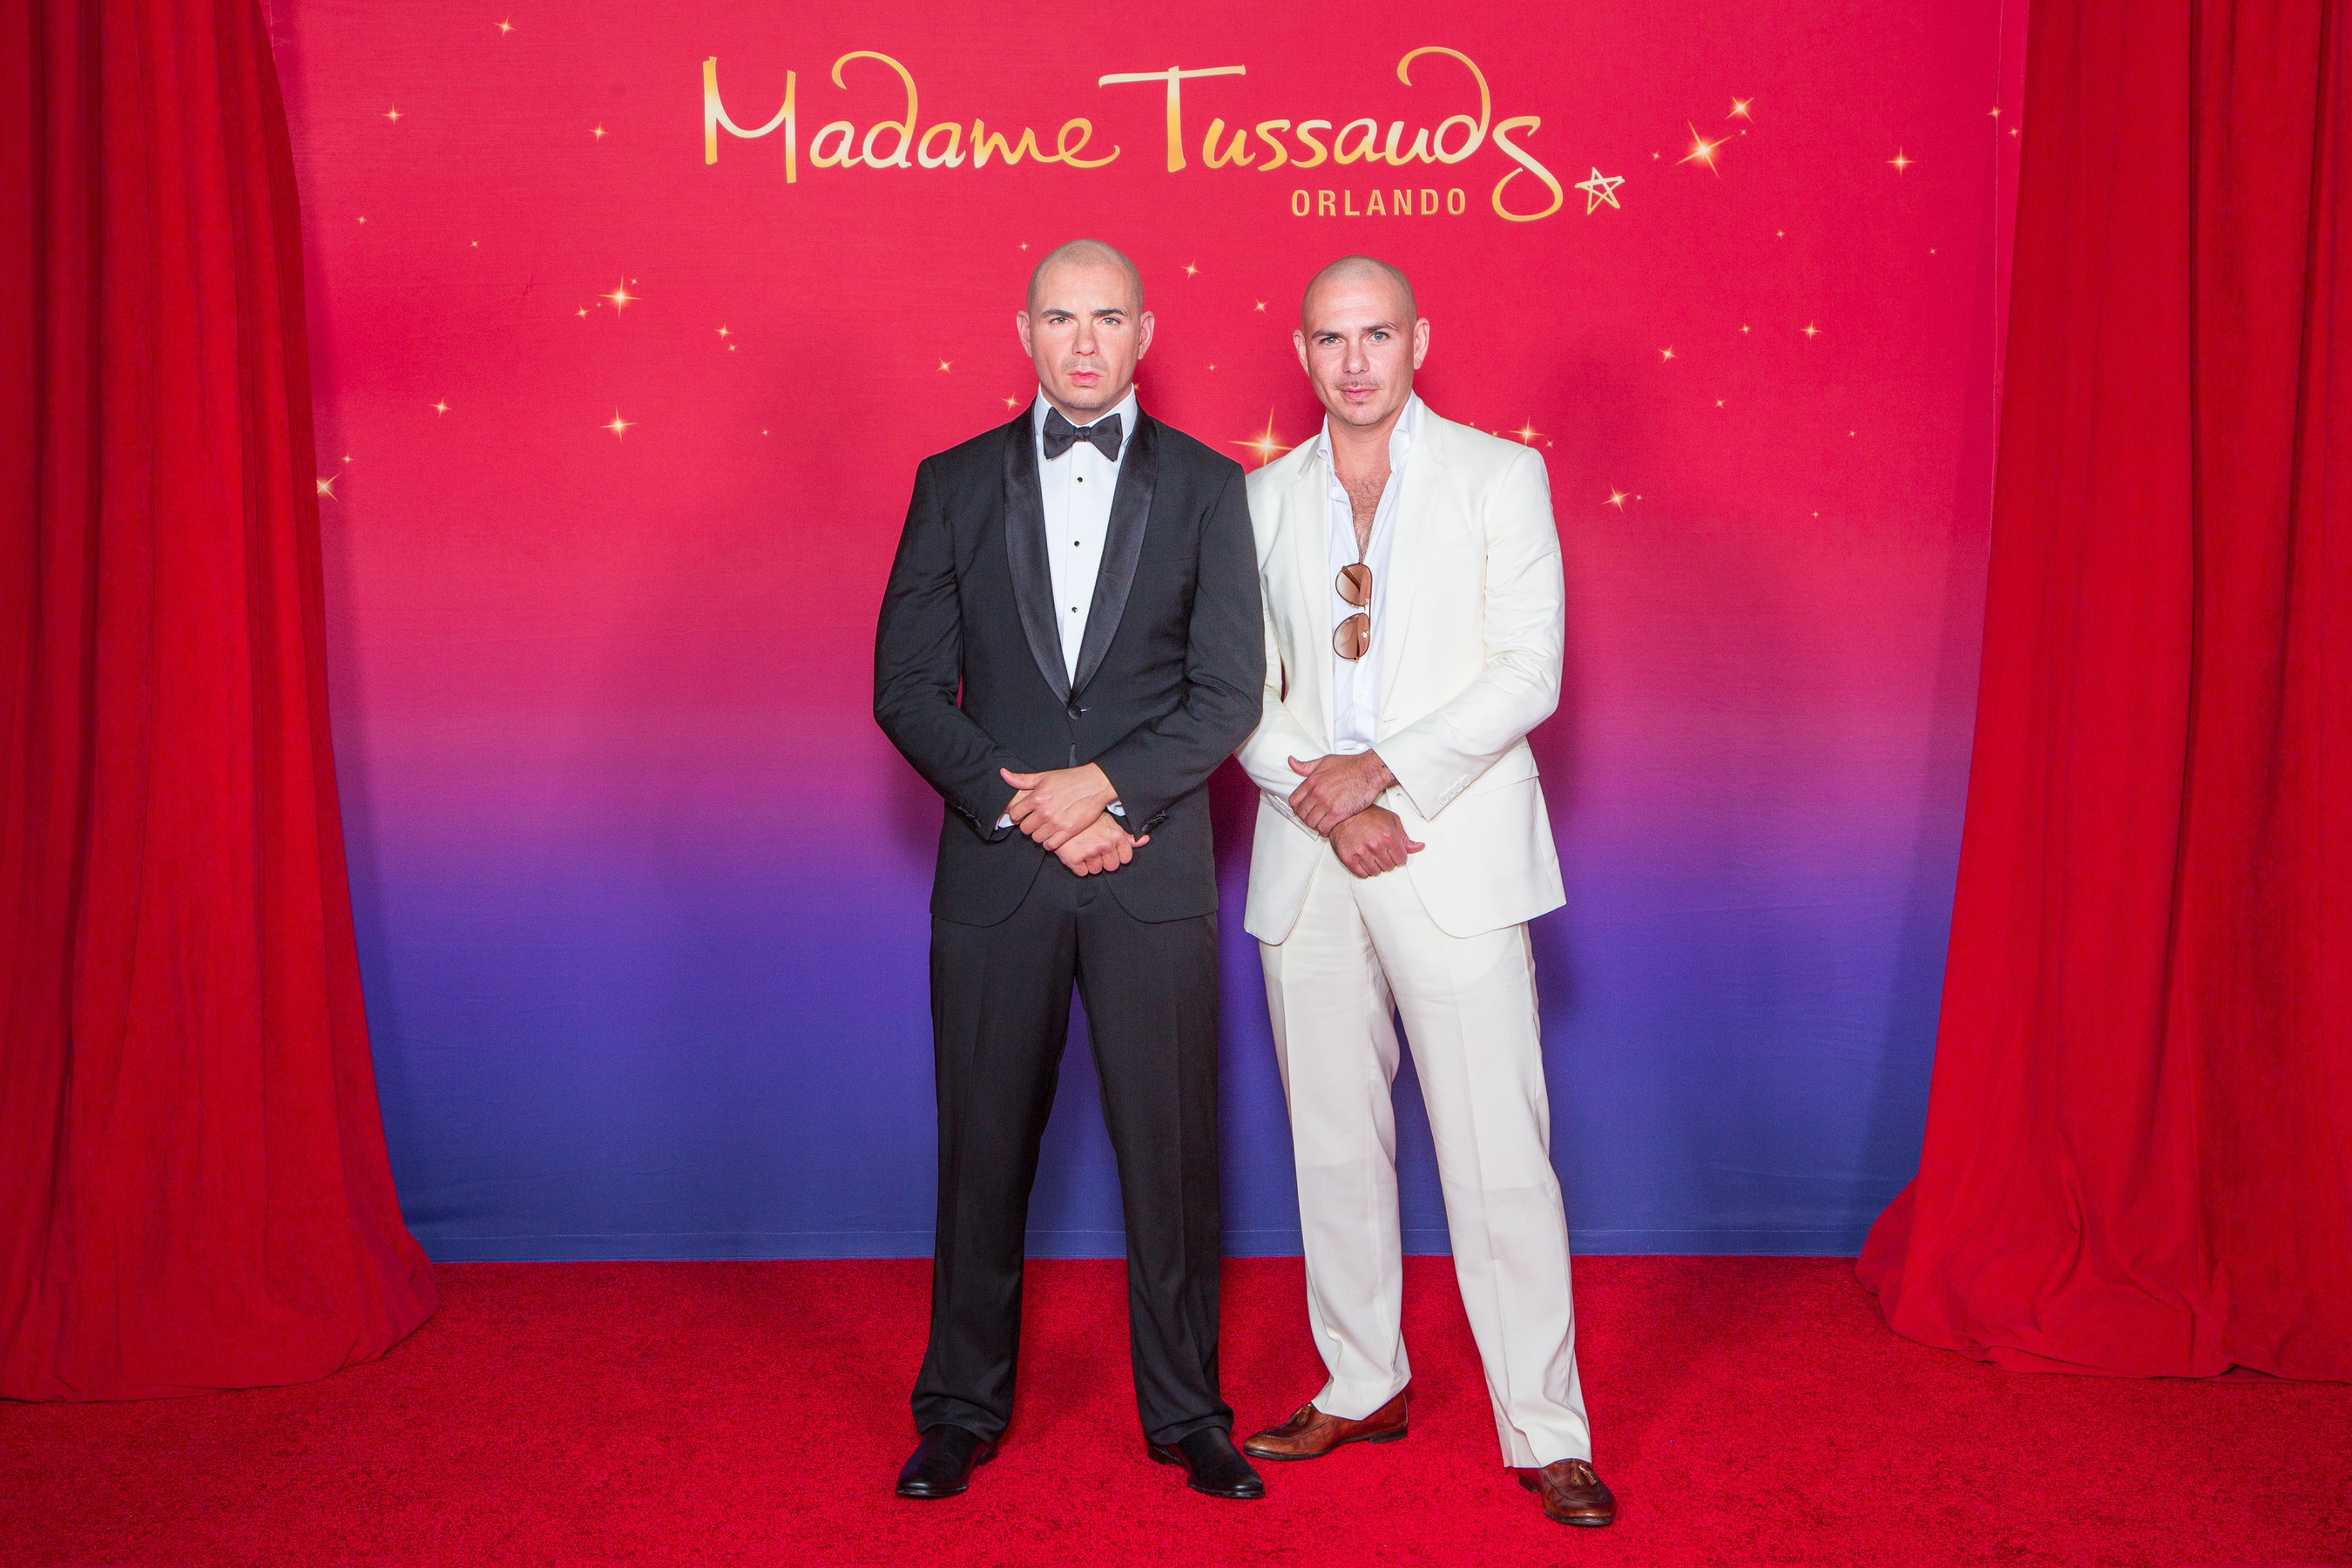 International superstar Pitbull, also known as Mr. Worldwide, meets his brand new figure for Madame Tussauds Orlando in Orlando, Fla.